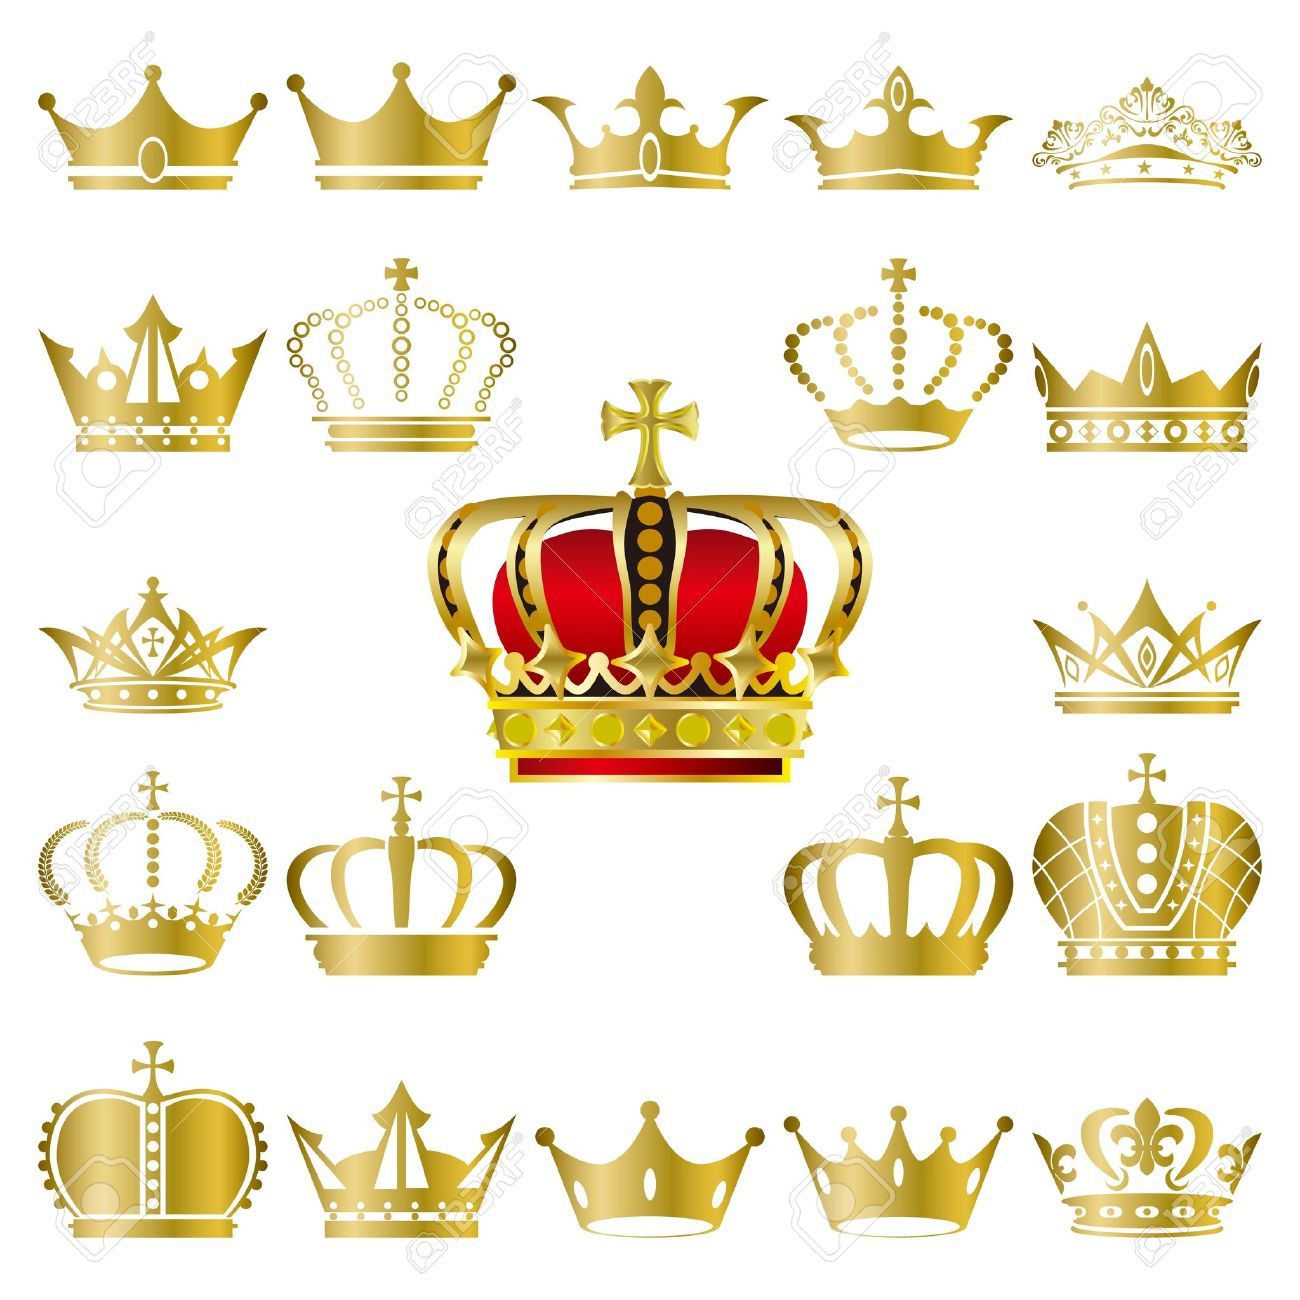 Crown and tiara icons set. Illustration vector. Stock Vector - 9216163